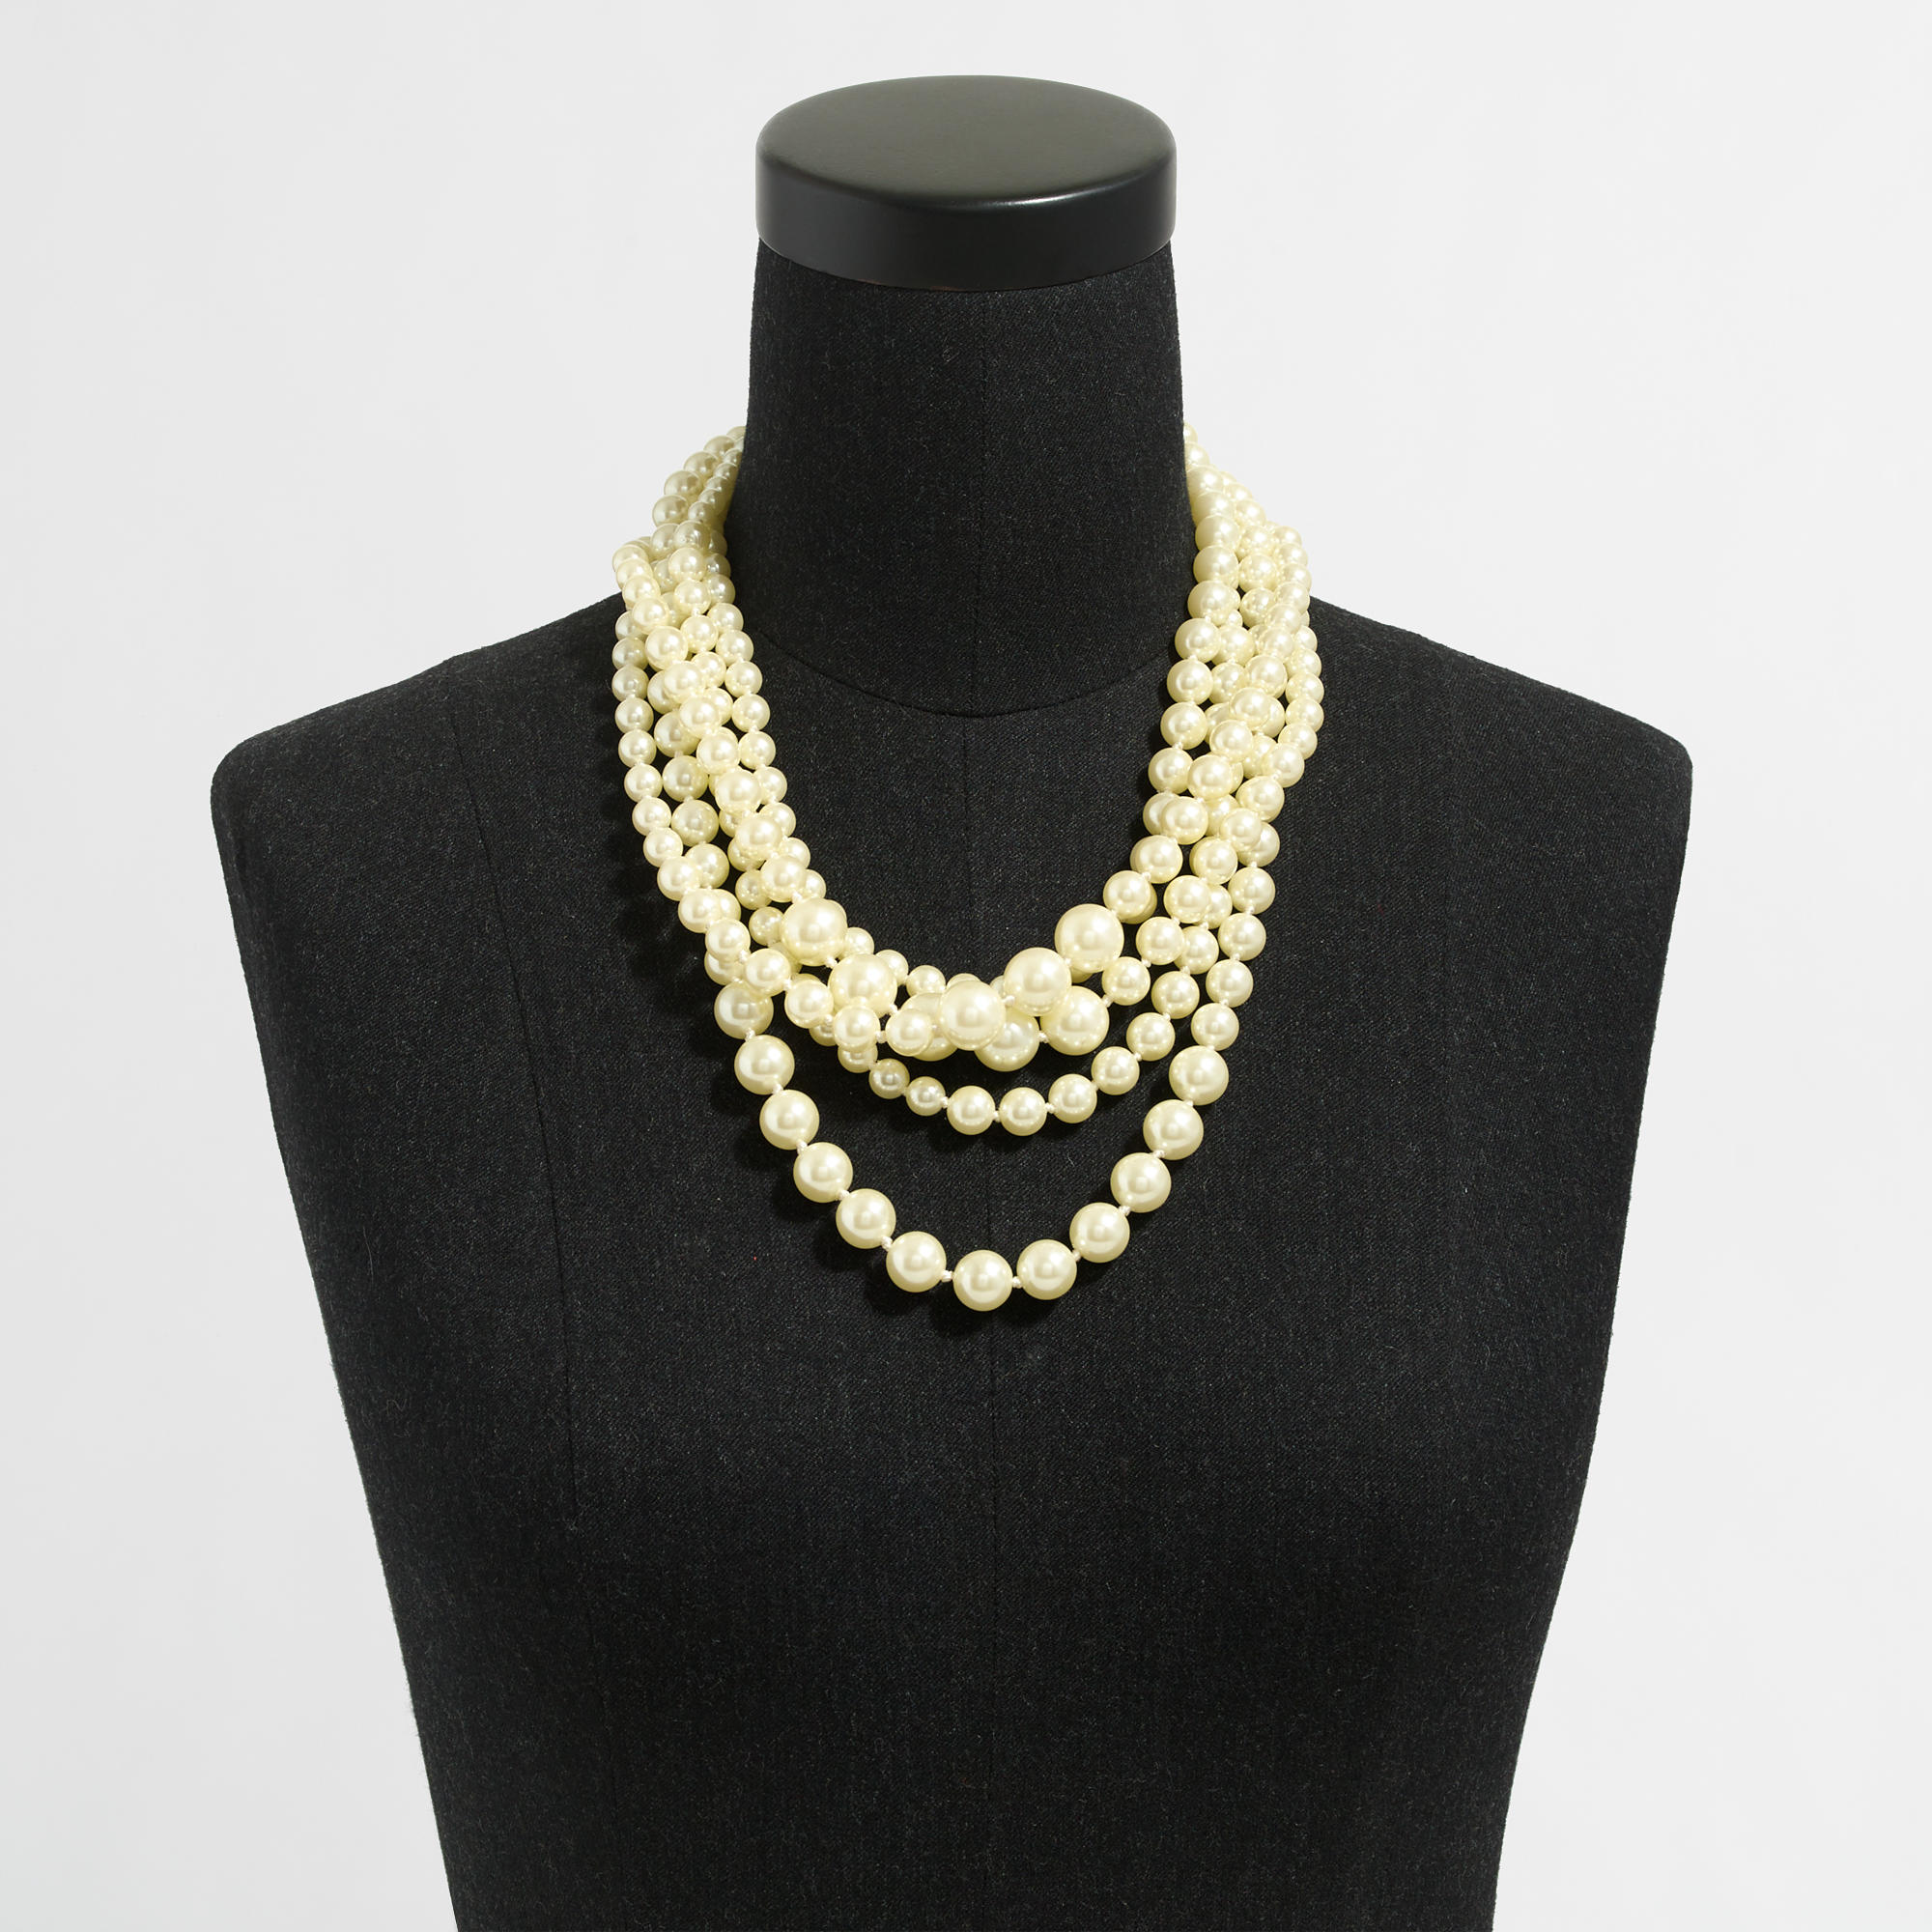 Multistrand Pearl Necklace; Multistrand Pearl Necklace